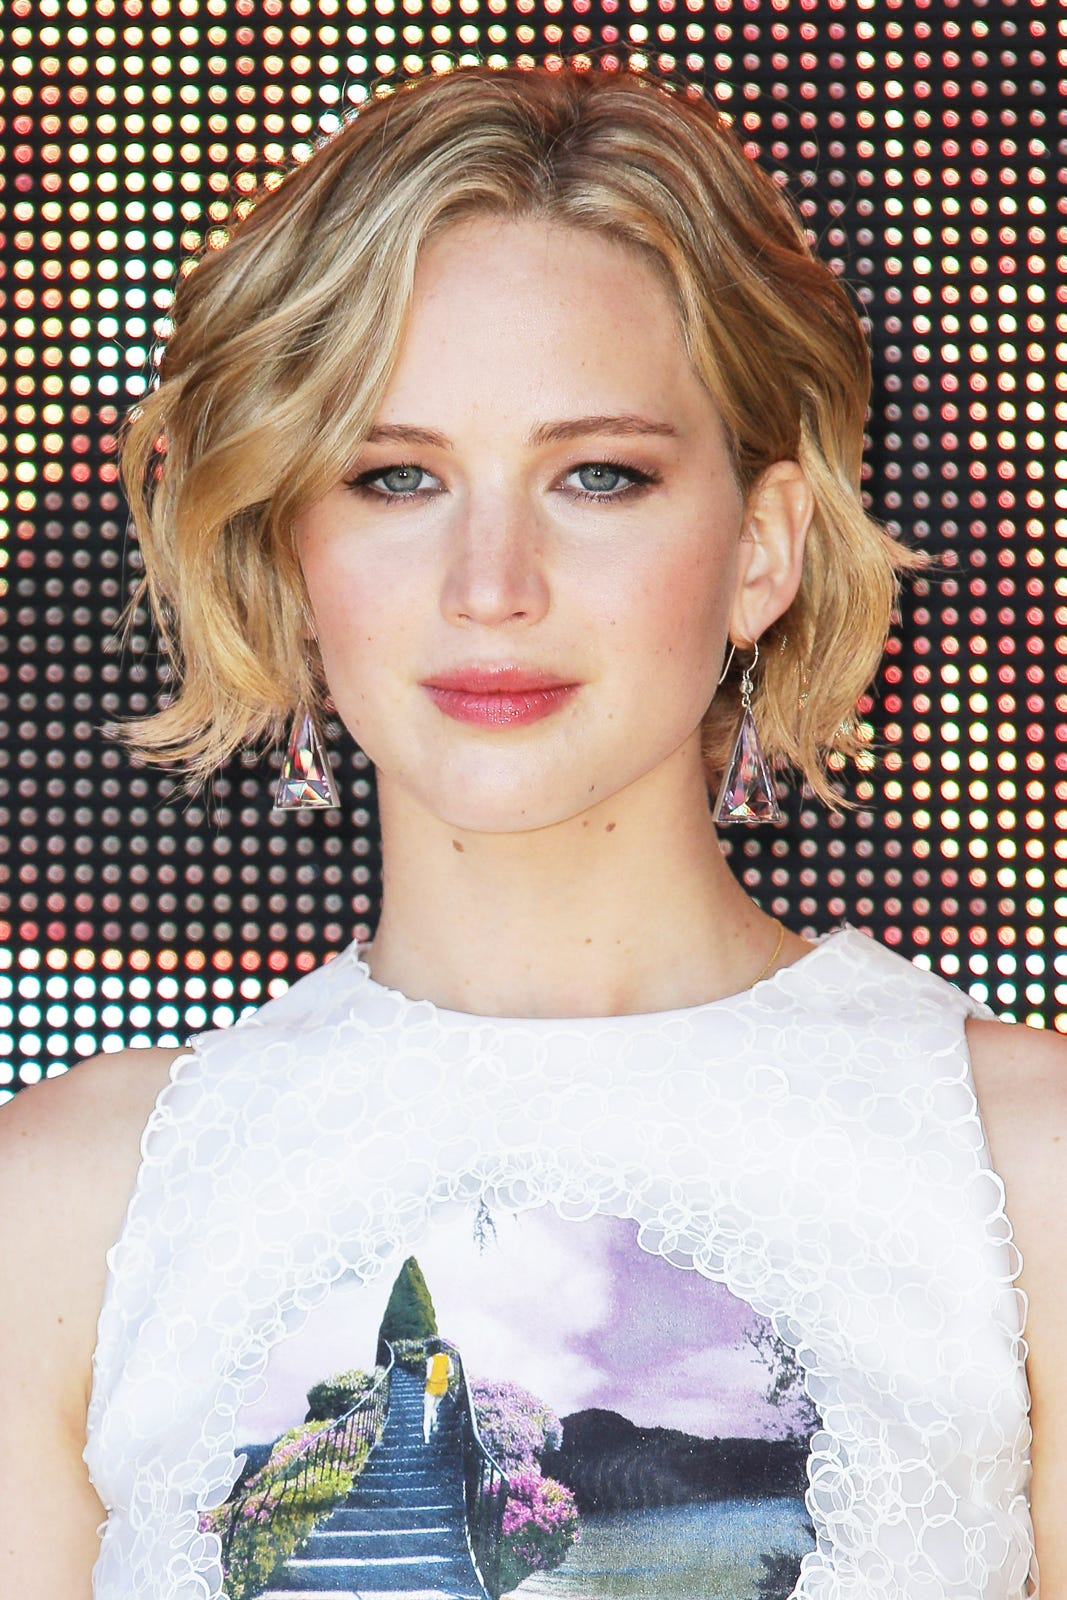 Baby Bob Hairstyle Celebrity Short Hair Trend